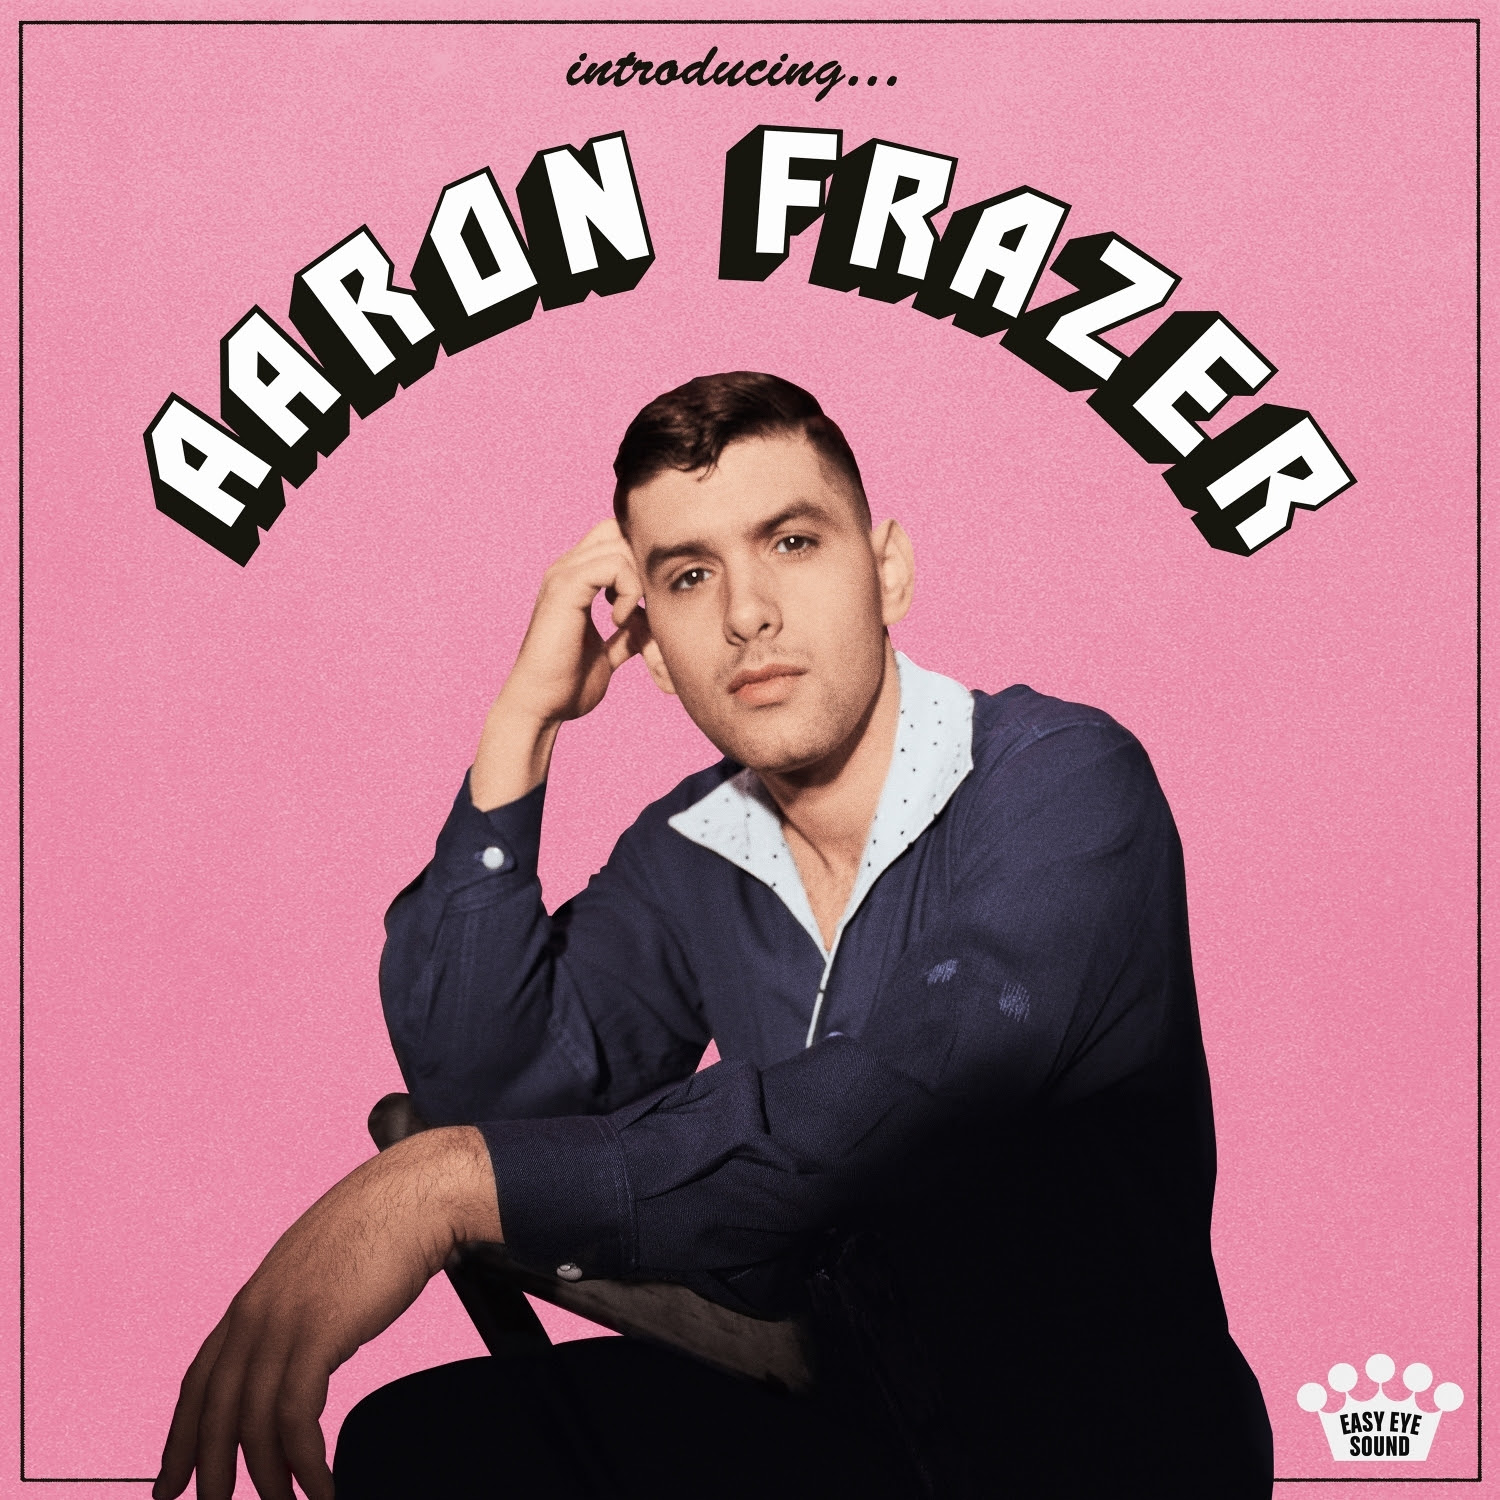 Aaron Frazer: Introducing... [Album Review]